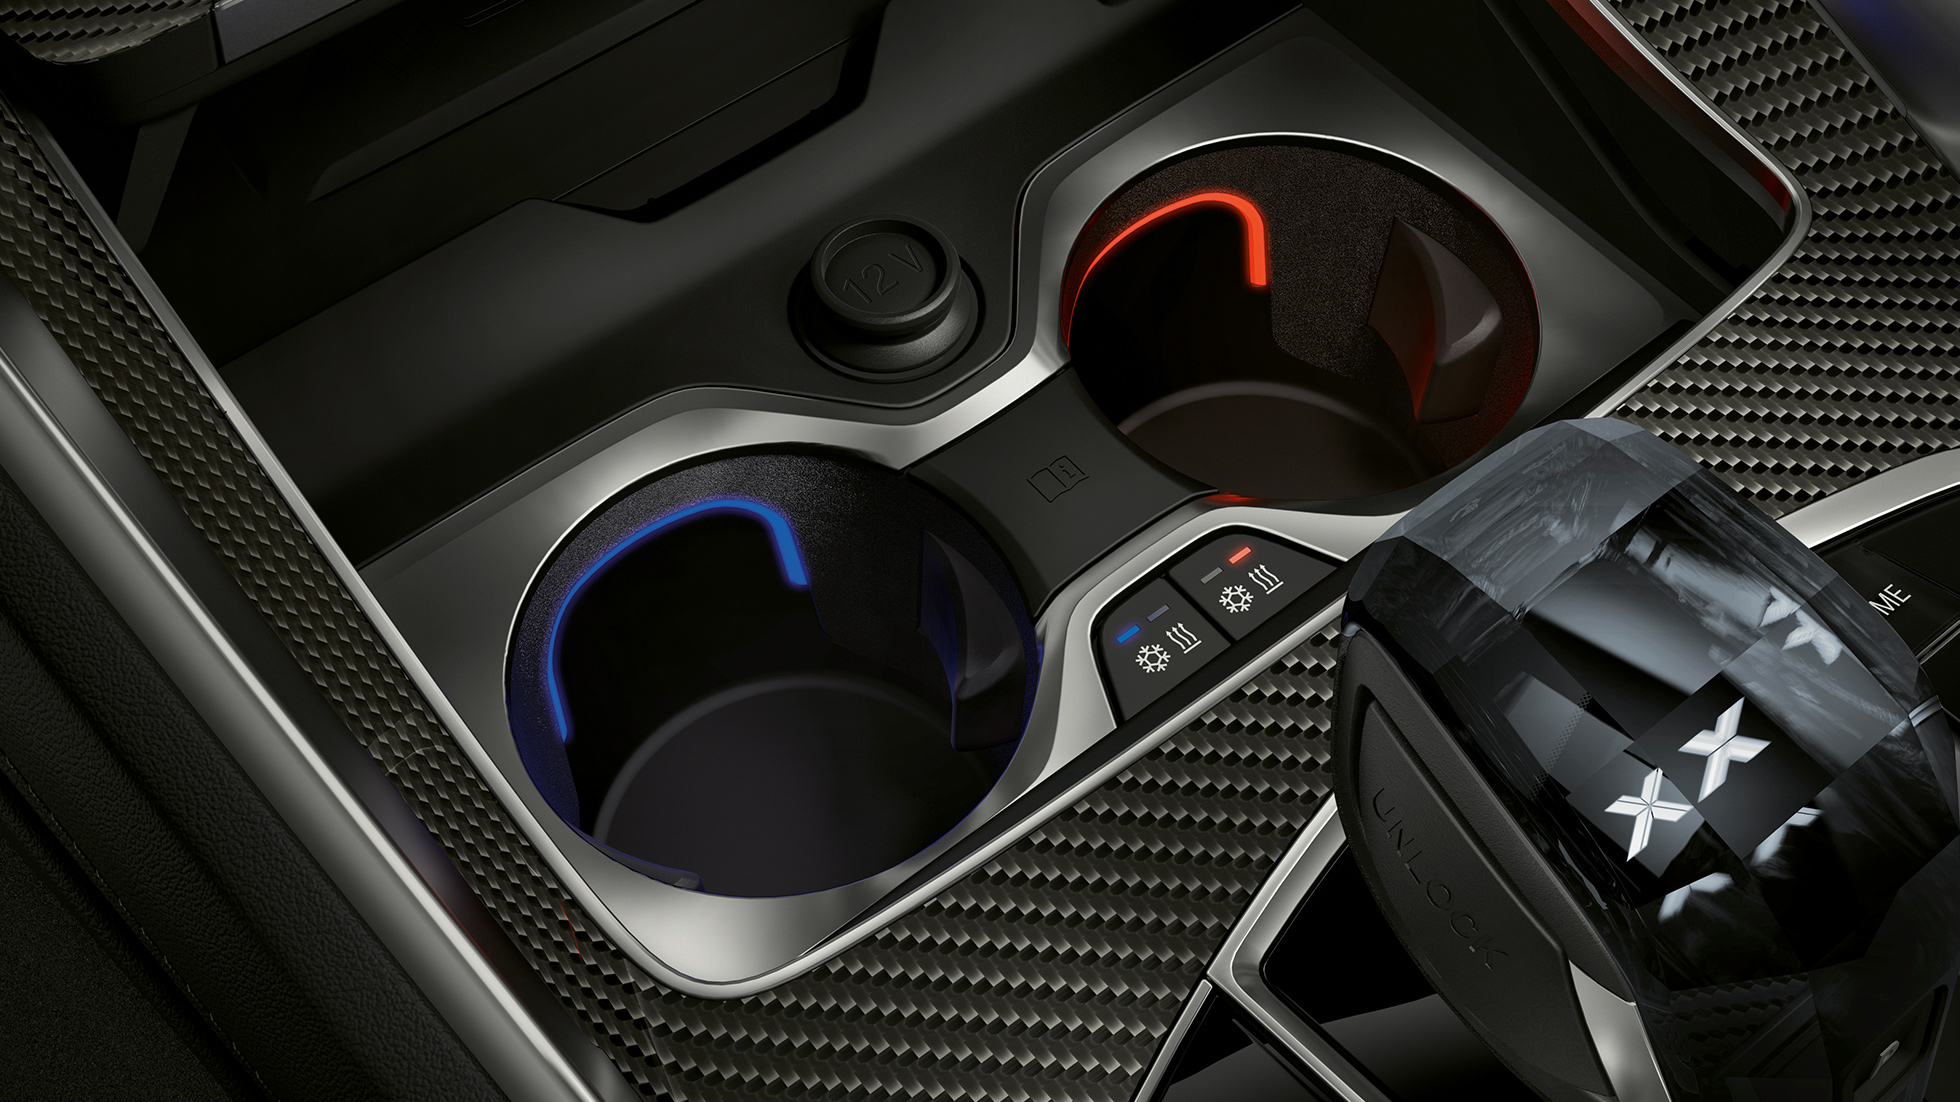 Close-up of the BMW interior with focus on temperature-controlled cupholder.